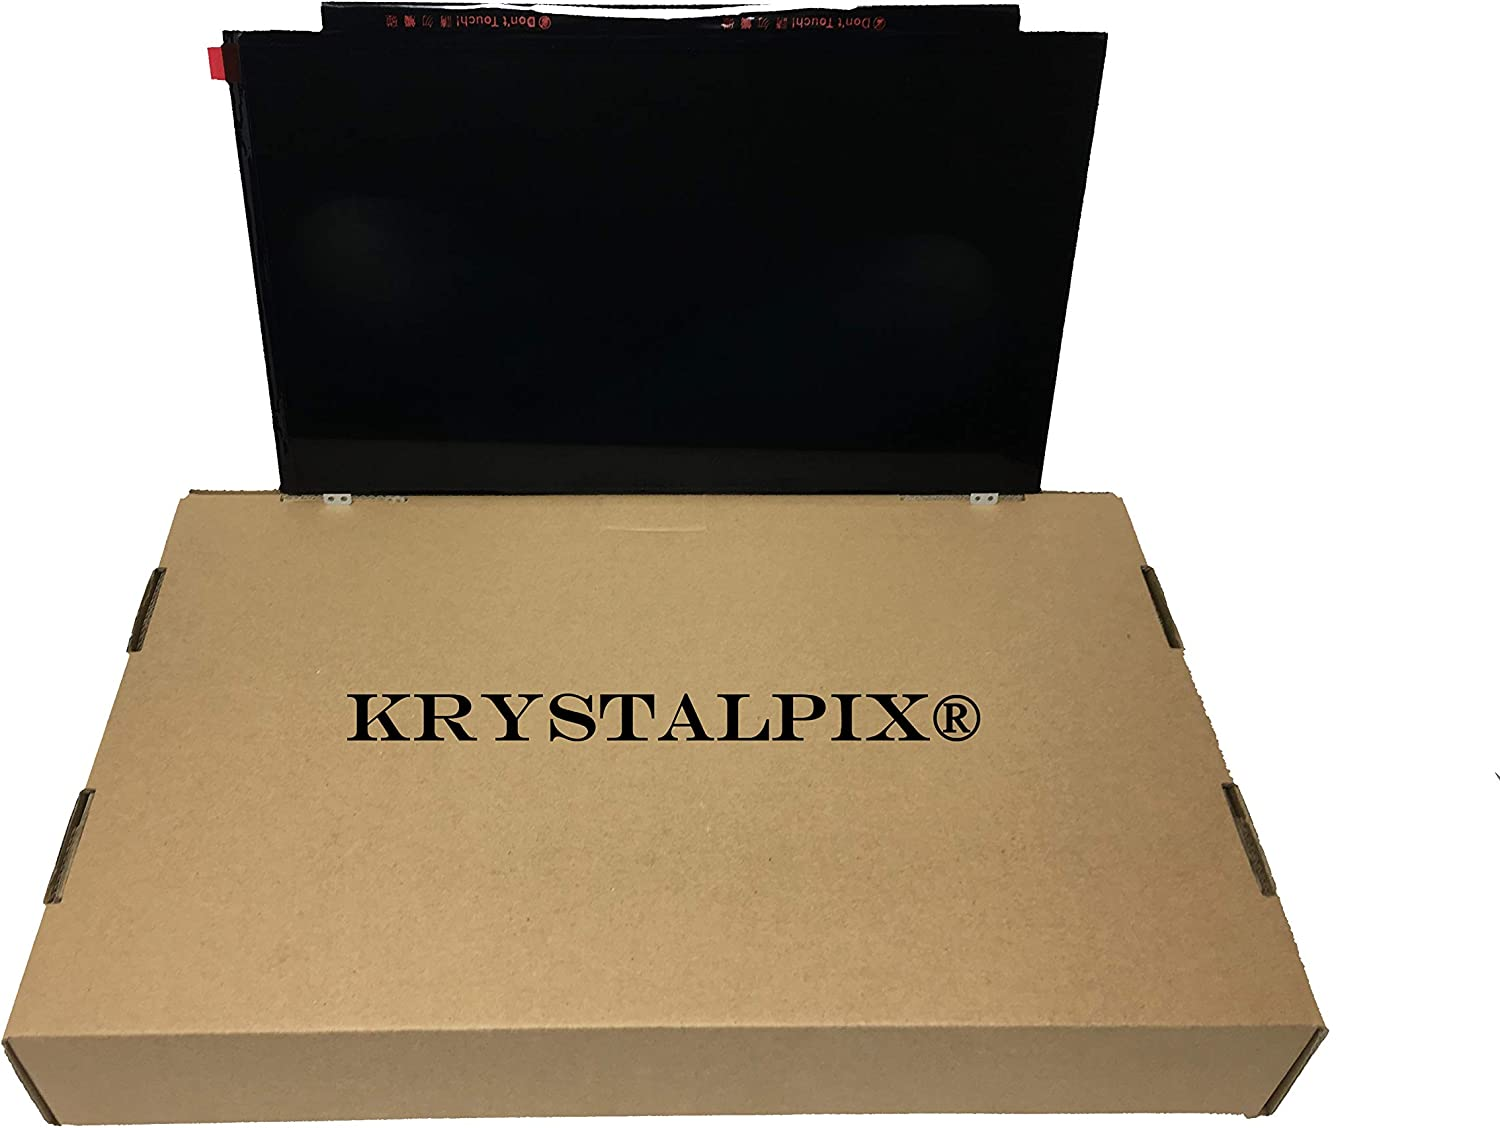 New KrystalPix LCD Display FITS - HP 17-BY1053DX 17.3 Non-Touch HD+ WXGA+ Edp Slim LED Screen